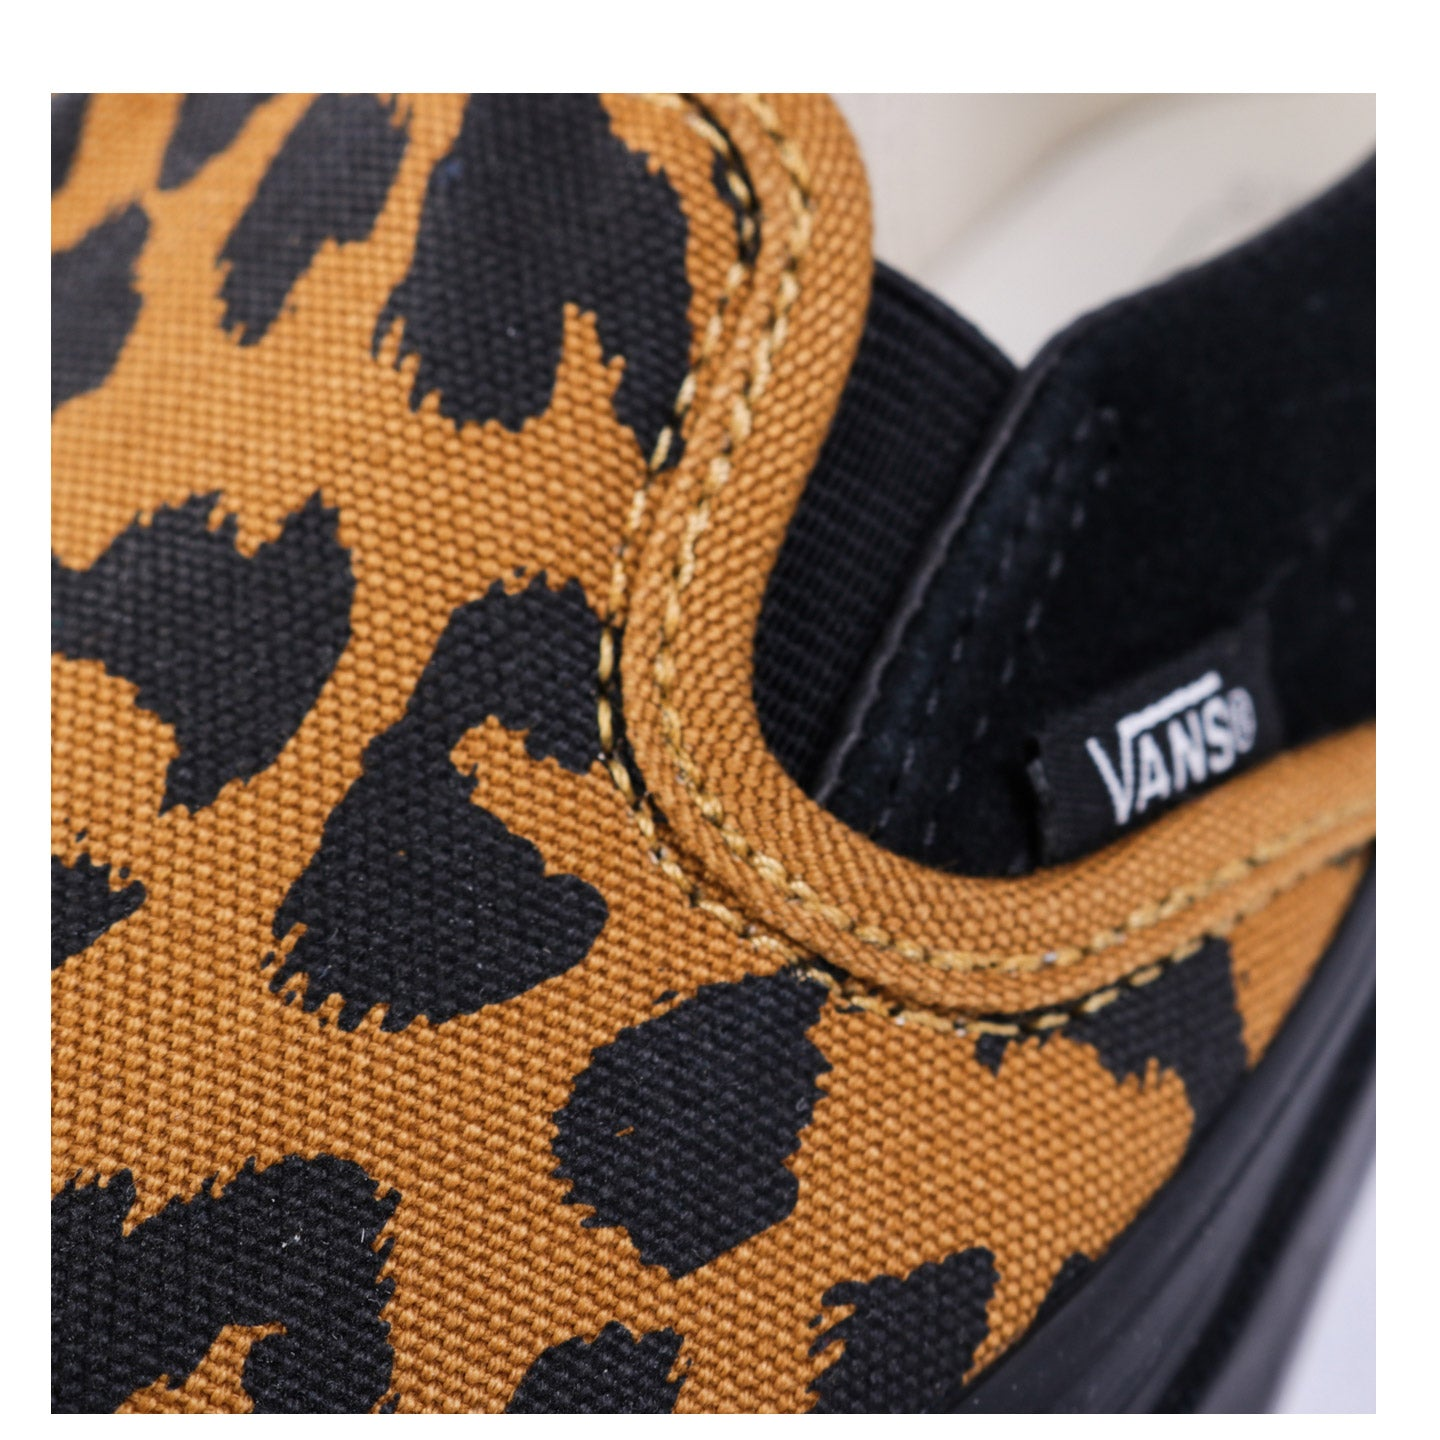 VAULT BY VANS OG CLASSIC SLIP-ON LEOPARD / BLACK